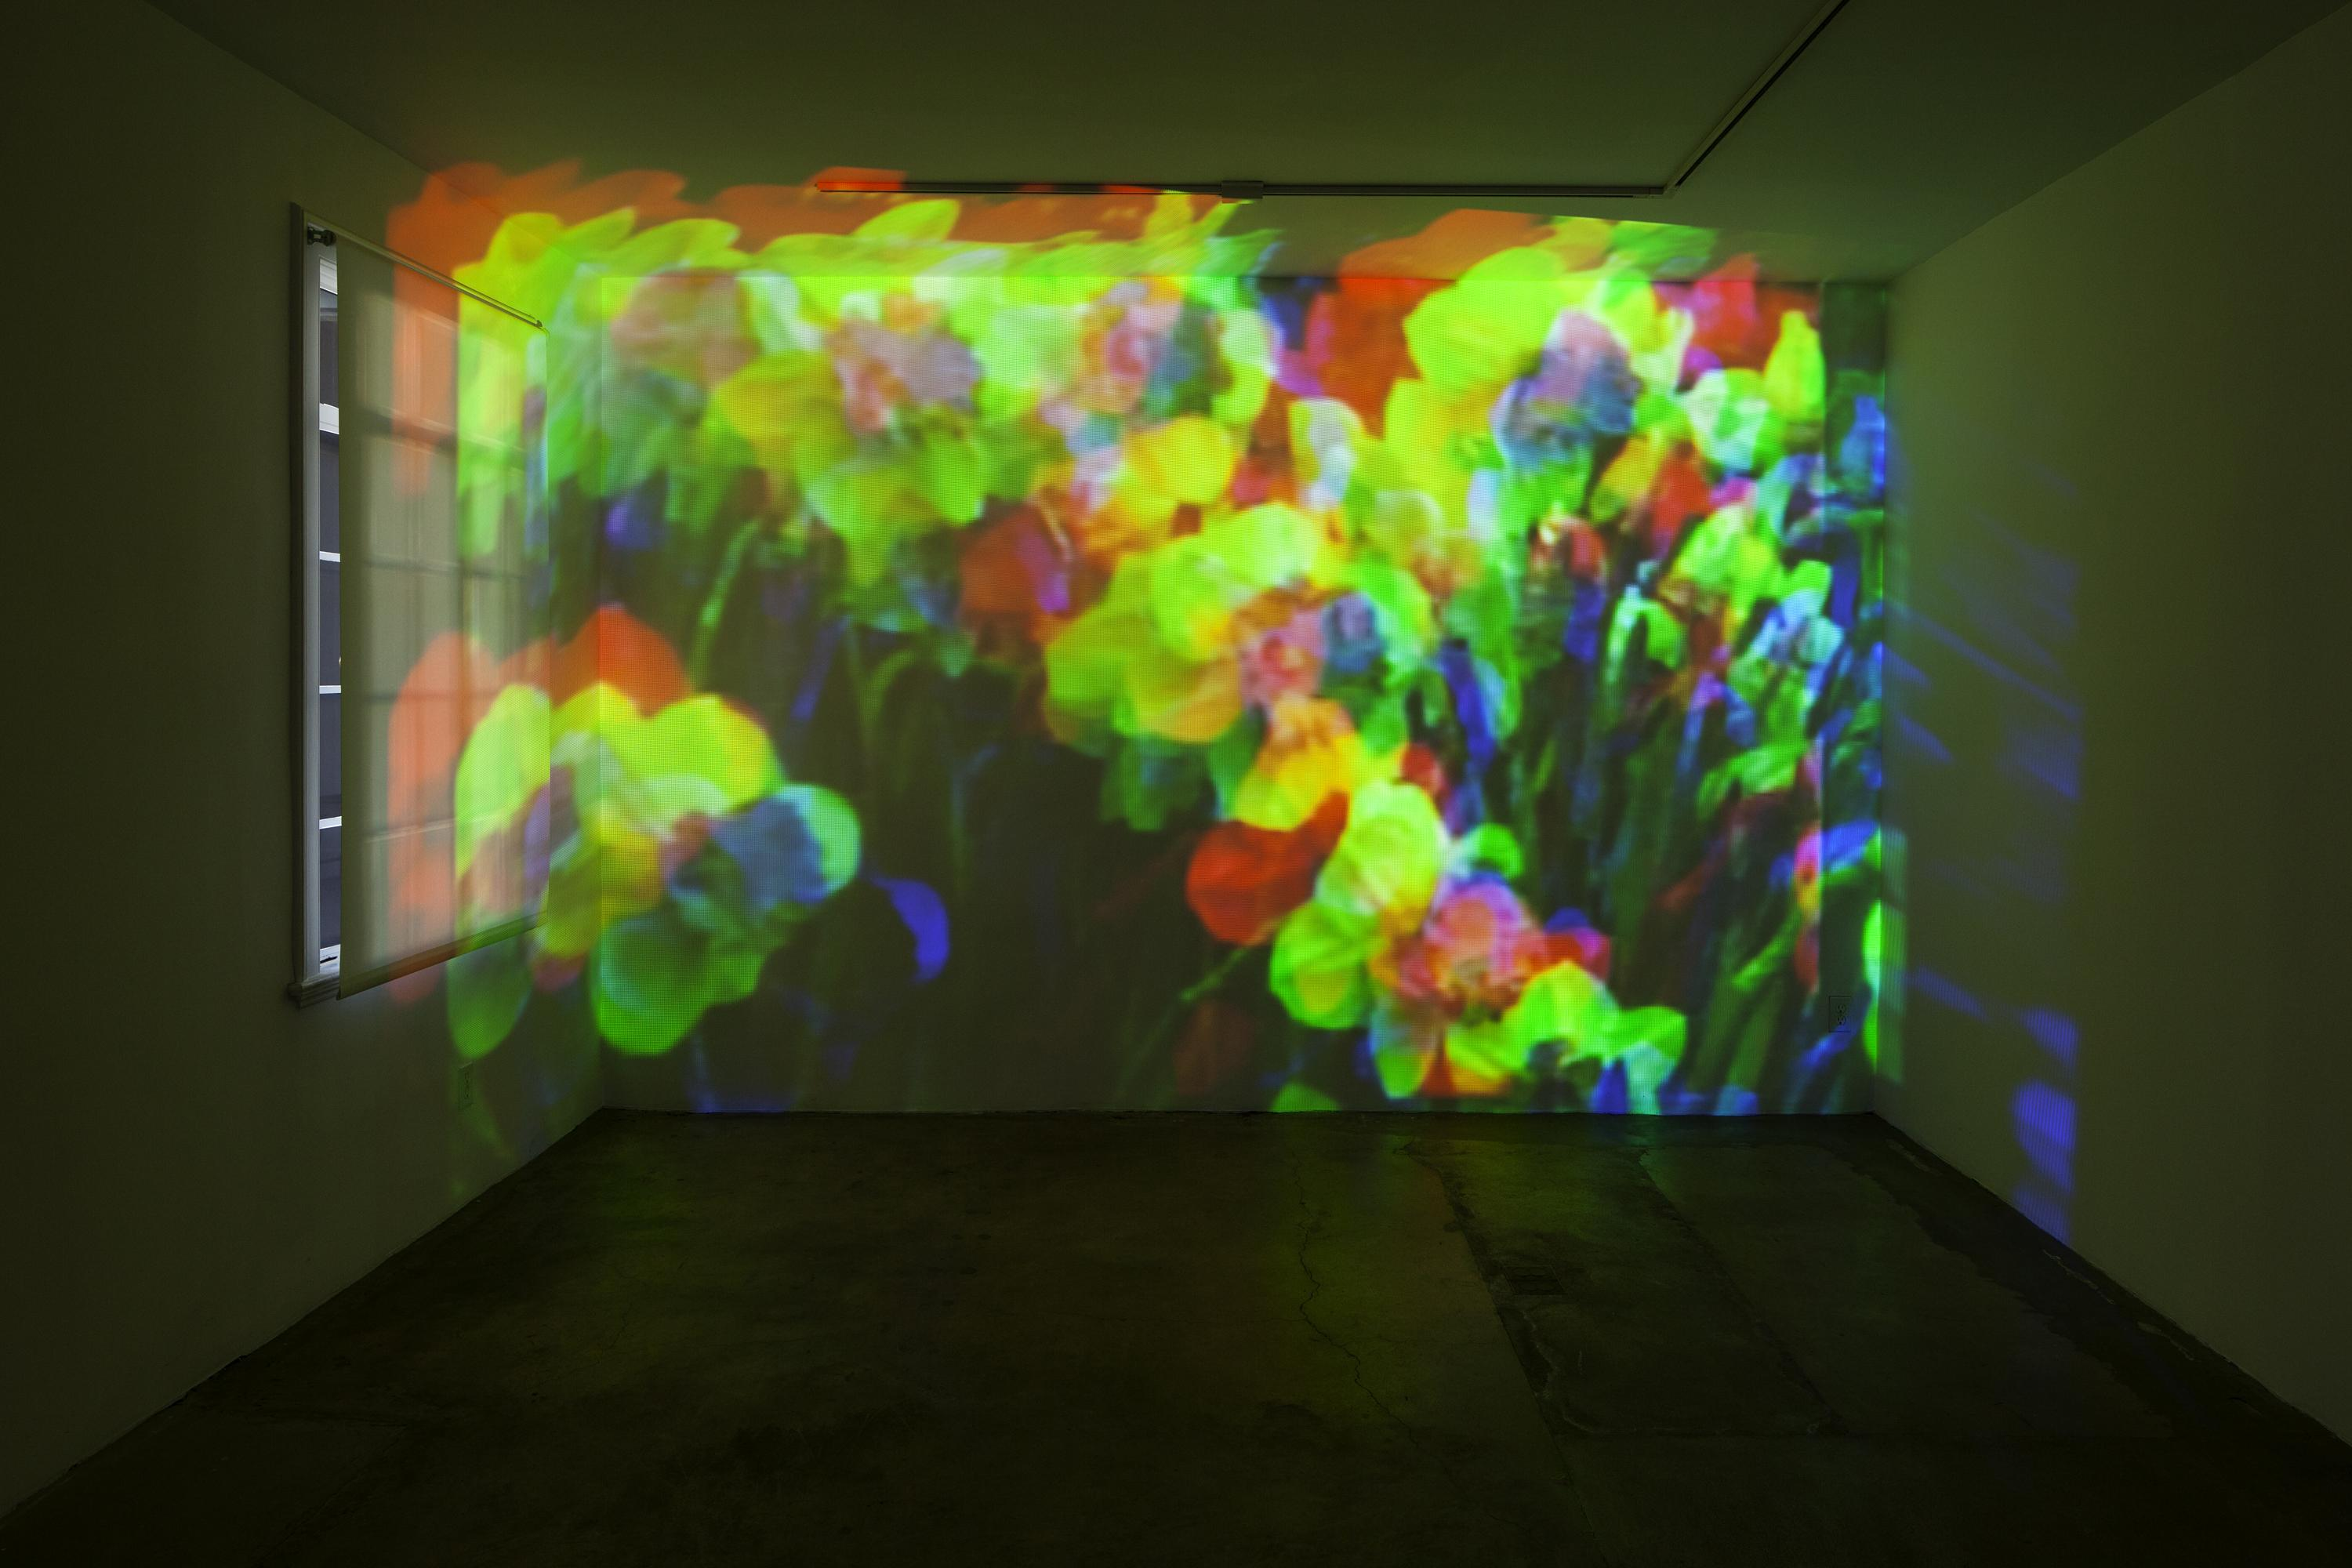 An image of daffodils is projected on the wall of an empty gallery. The image covers the entire wall, and is made of three overlapping projections in red, green, and blue, creating a picture that distorts the flowers.